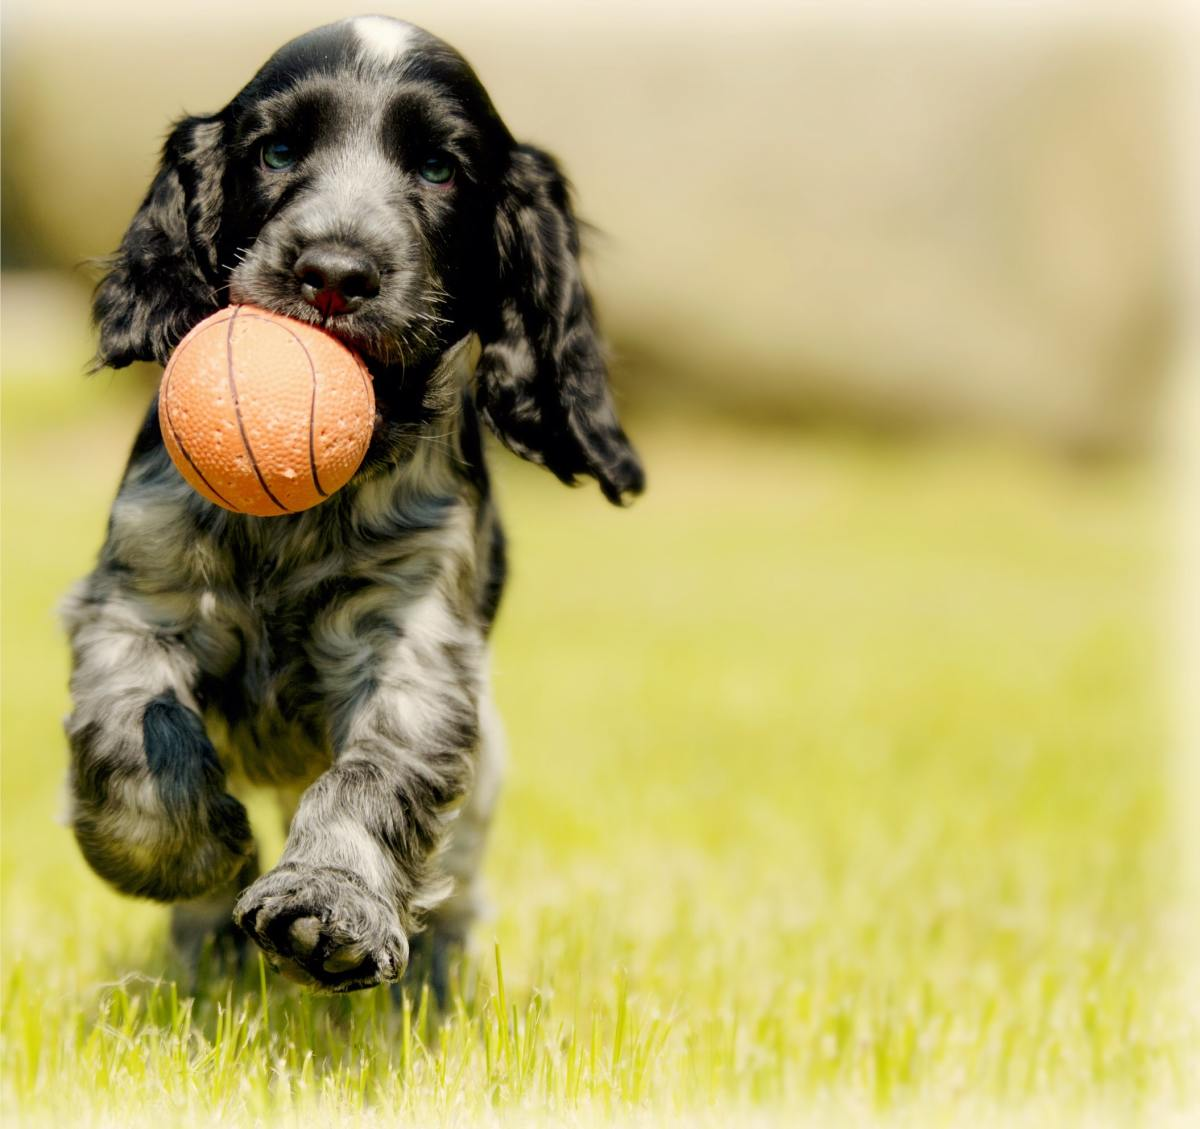 Thefts of Cocker Spaniels have risen by 93% in the UK